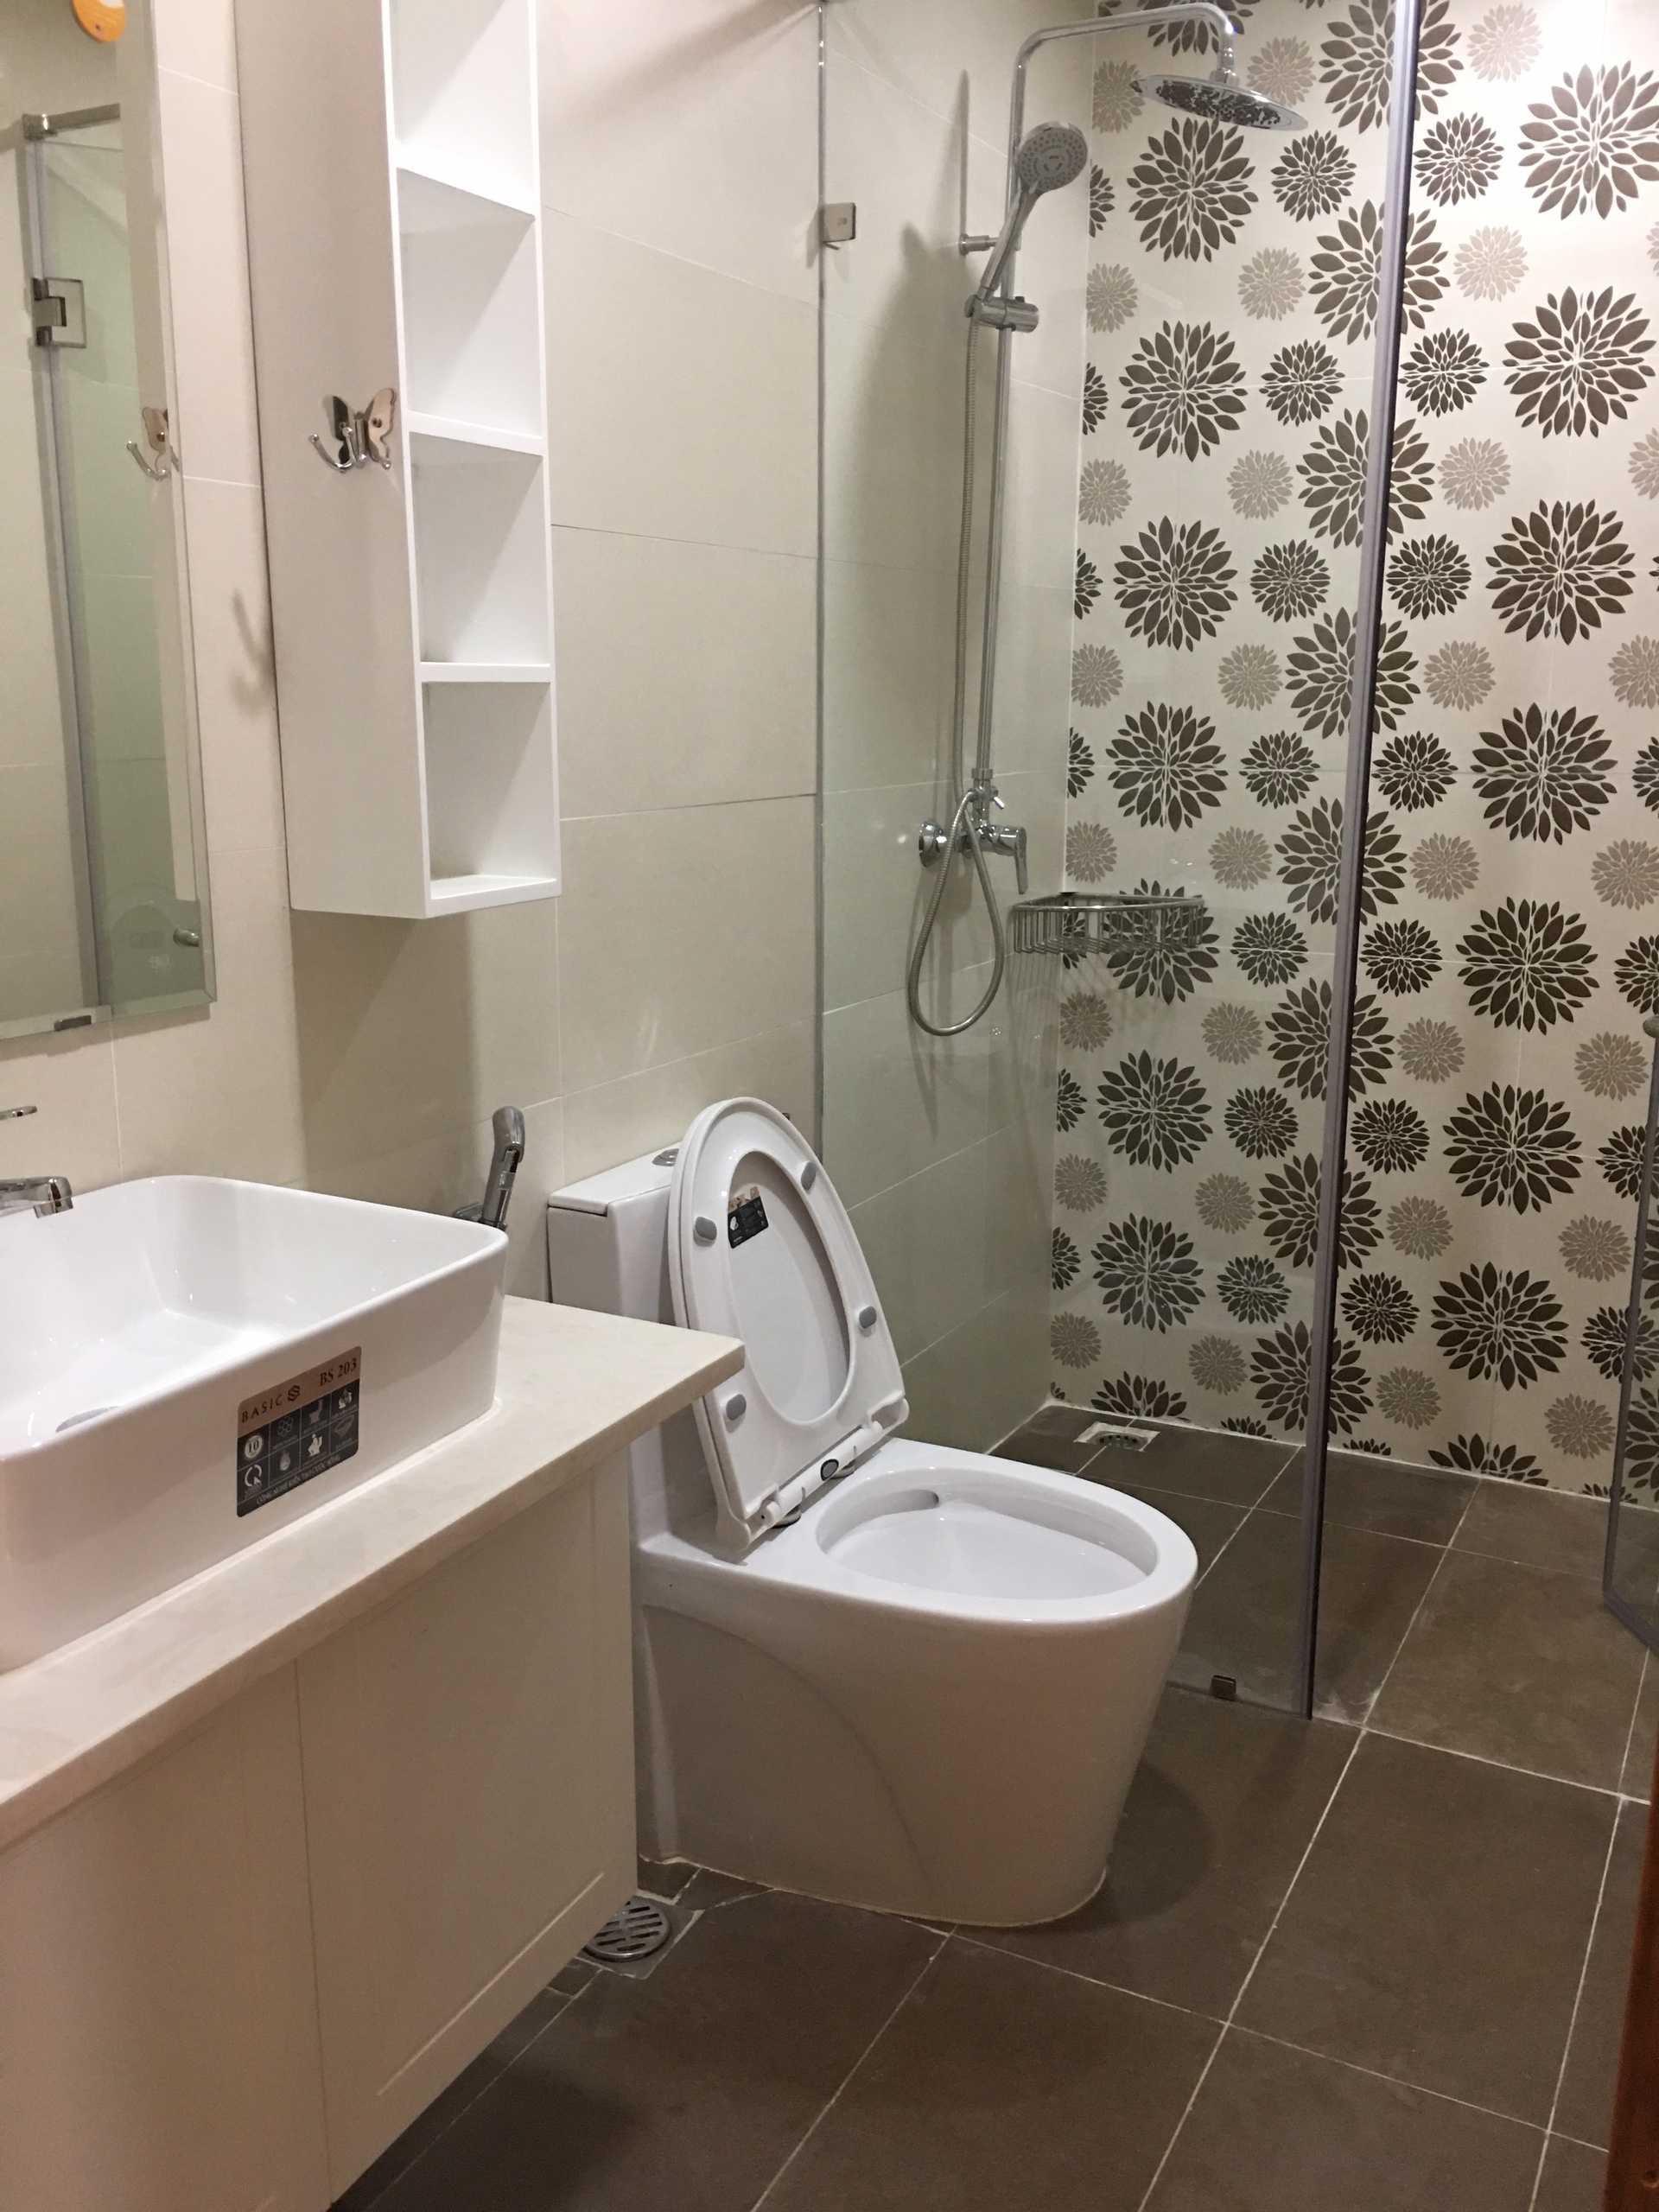 Serviced apartment for rent D299477 (8)